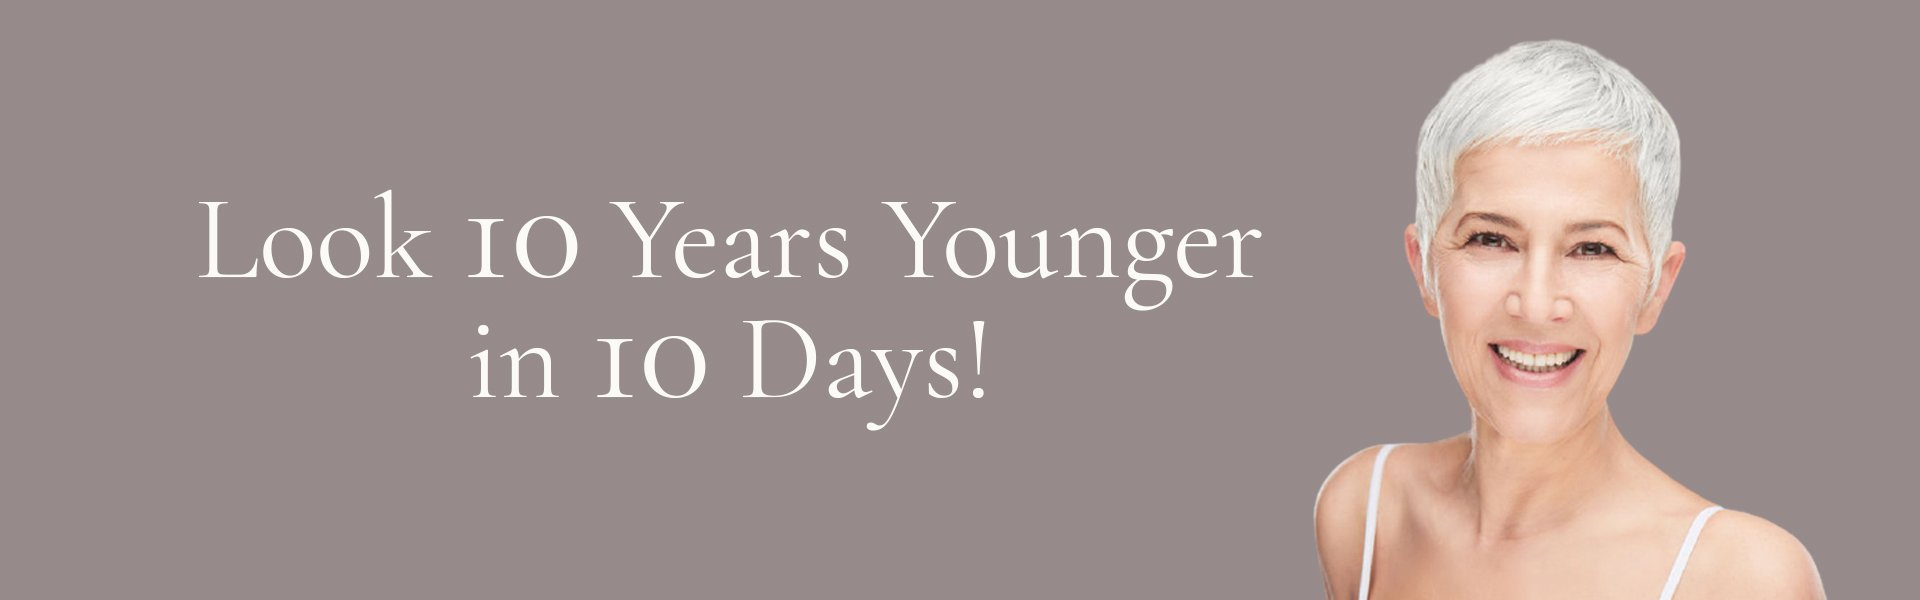 Look 10 Years Younger in 10 Days Oxfordshire Hair & Beauty Salon